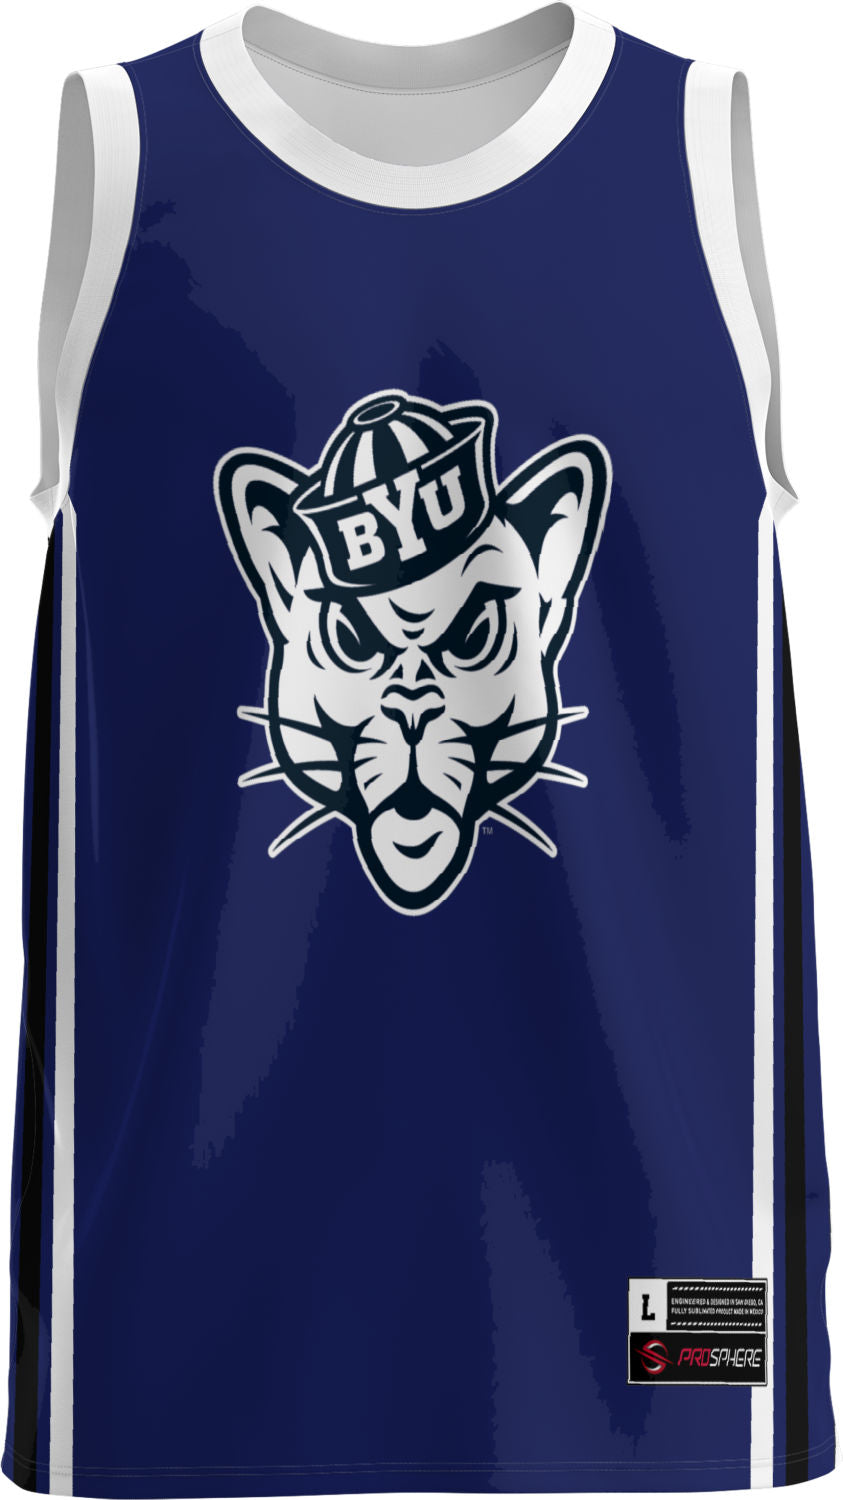 Brigham Young University: Youth Replica Basketball Fan Jersey - Classic